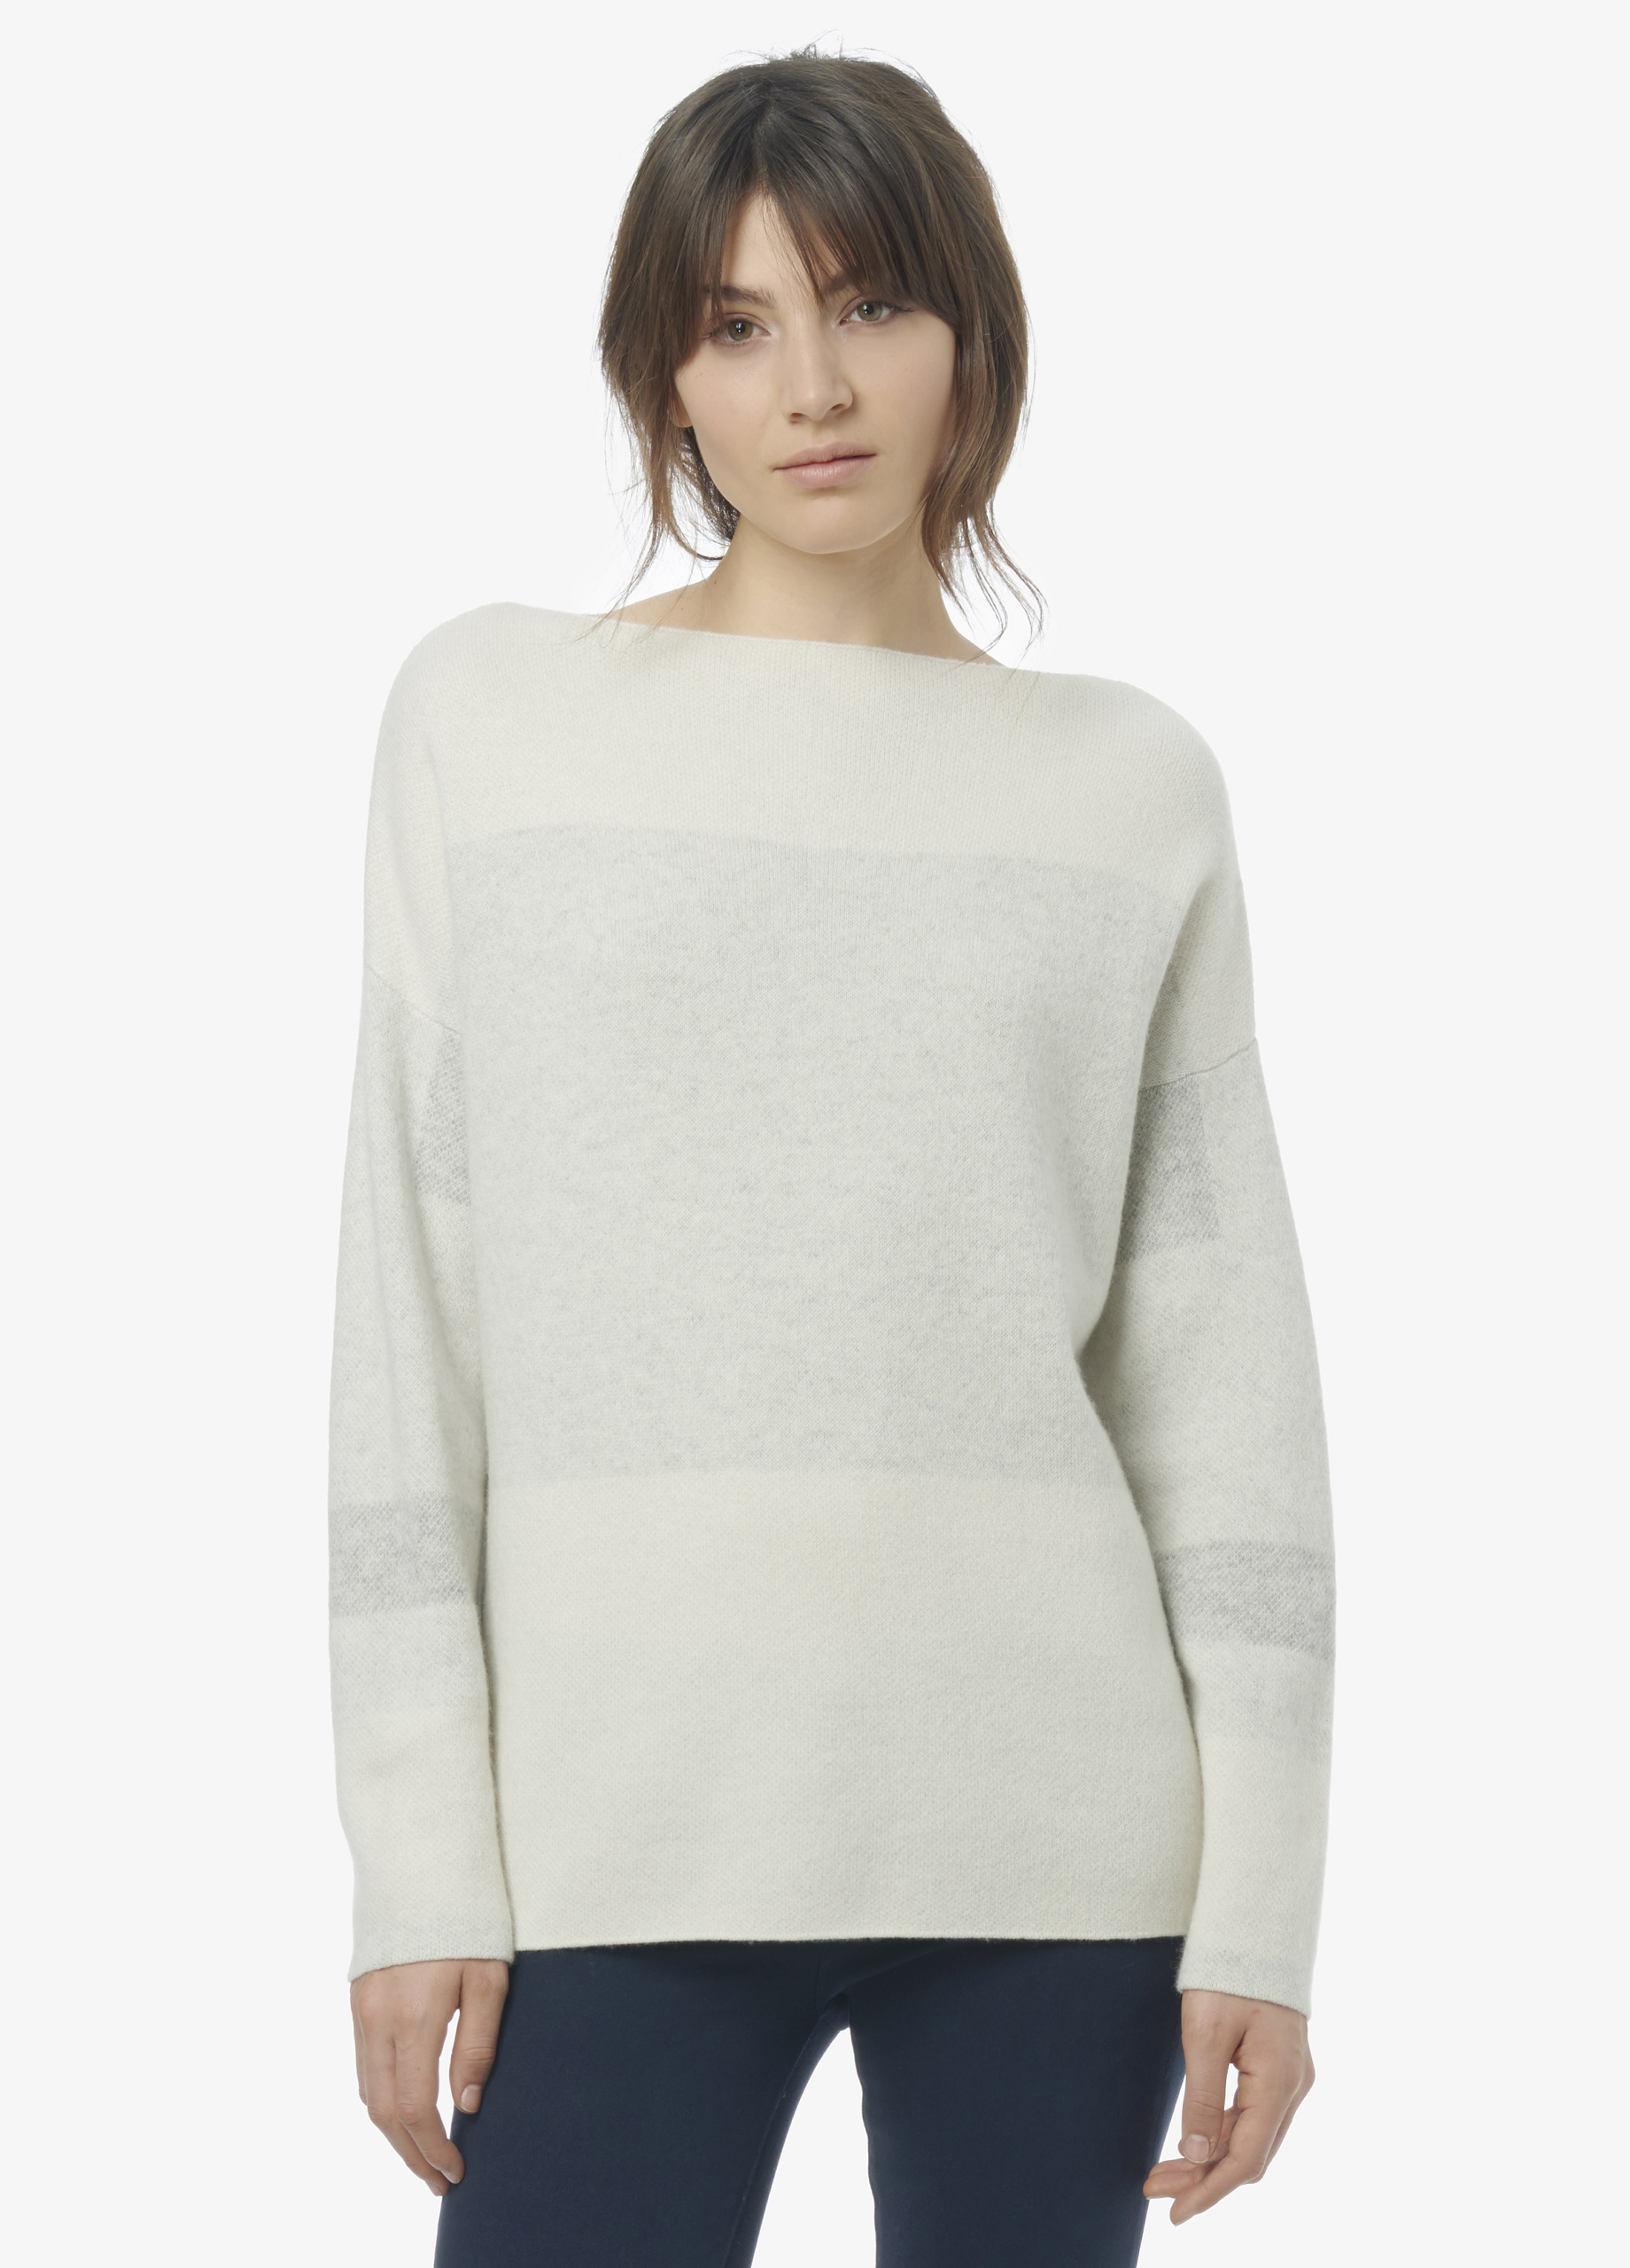 Vince Intarsia Wool Cashmere Boatneck Sweater in White | Lyst